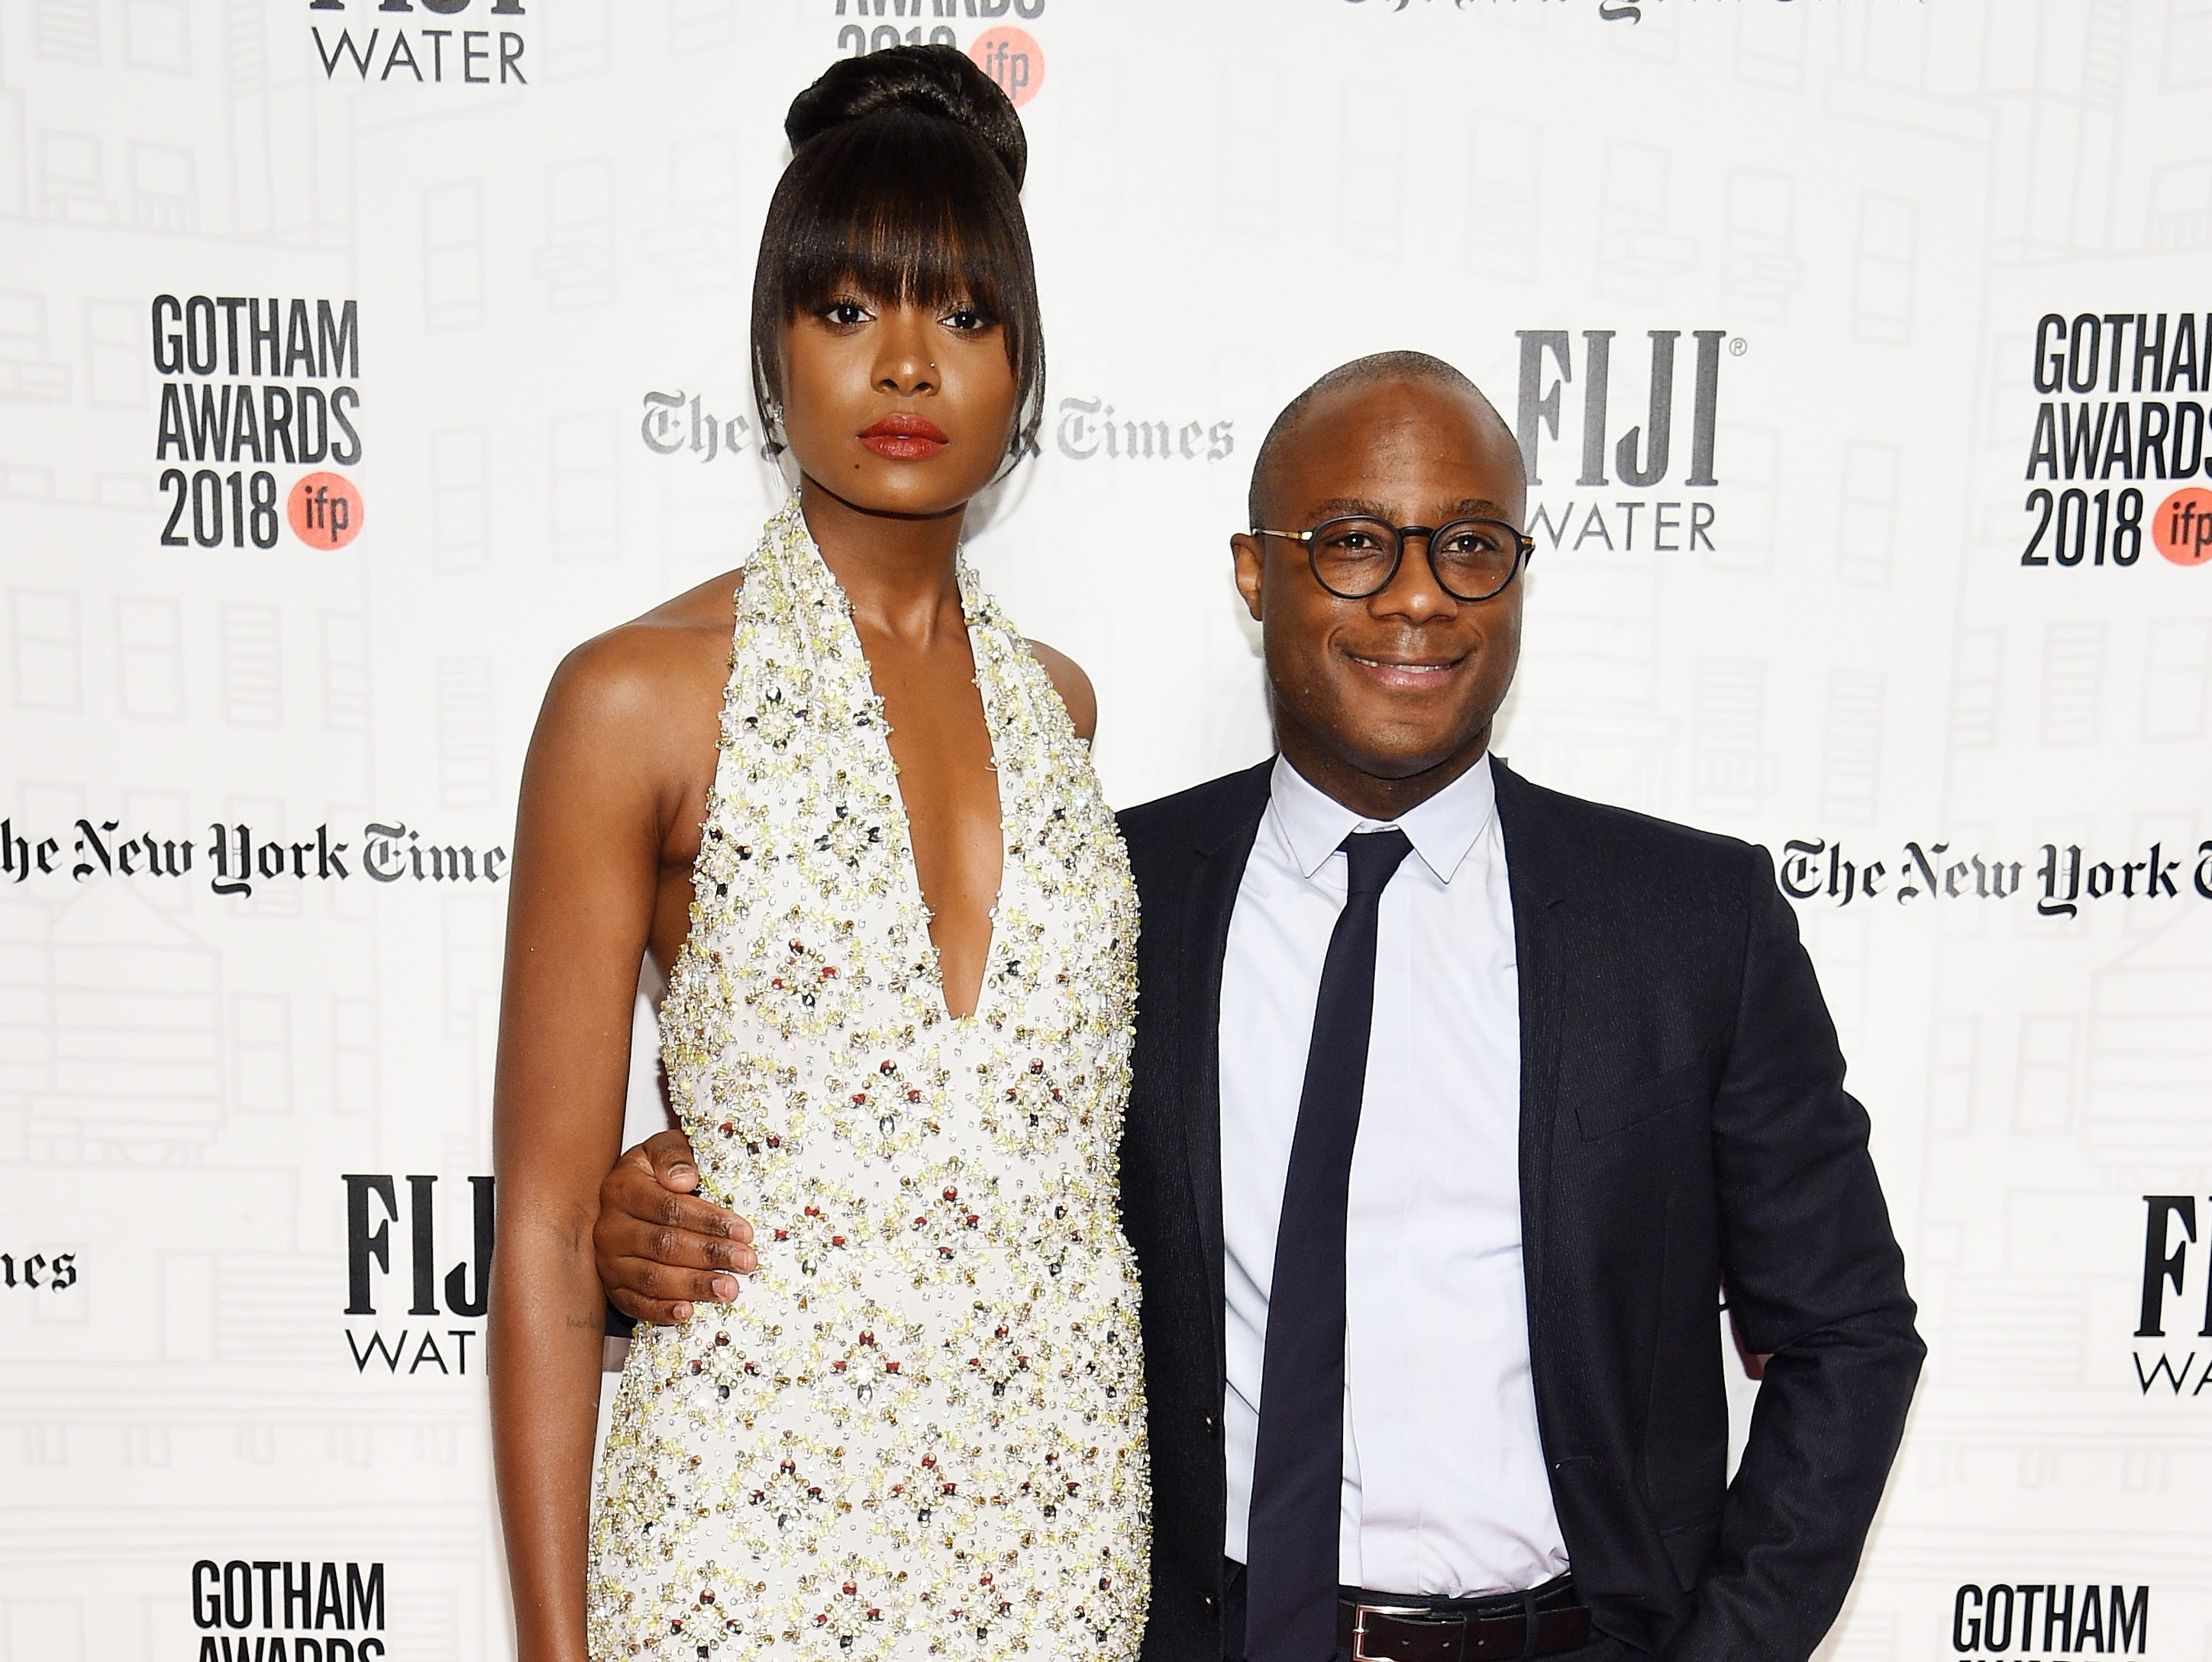 NEW YORK, NY - NOVEMBER 26: Naturi Naughton and Barry Jenkins attend IFP's 27th Annual Gotham Independent Film Awards at Cipriani, Wall Street on November 26, 2018 in New York City.  (Photo by Dimitrios Kambouris/Getty Images for IFP) ORG XMIT: 775261541 ORIG FILE ID: 1065571456